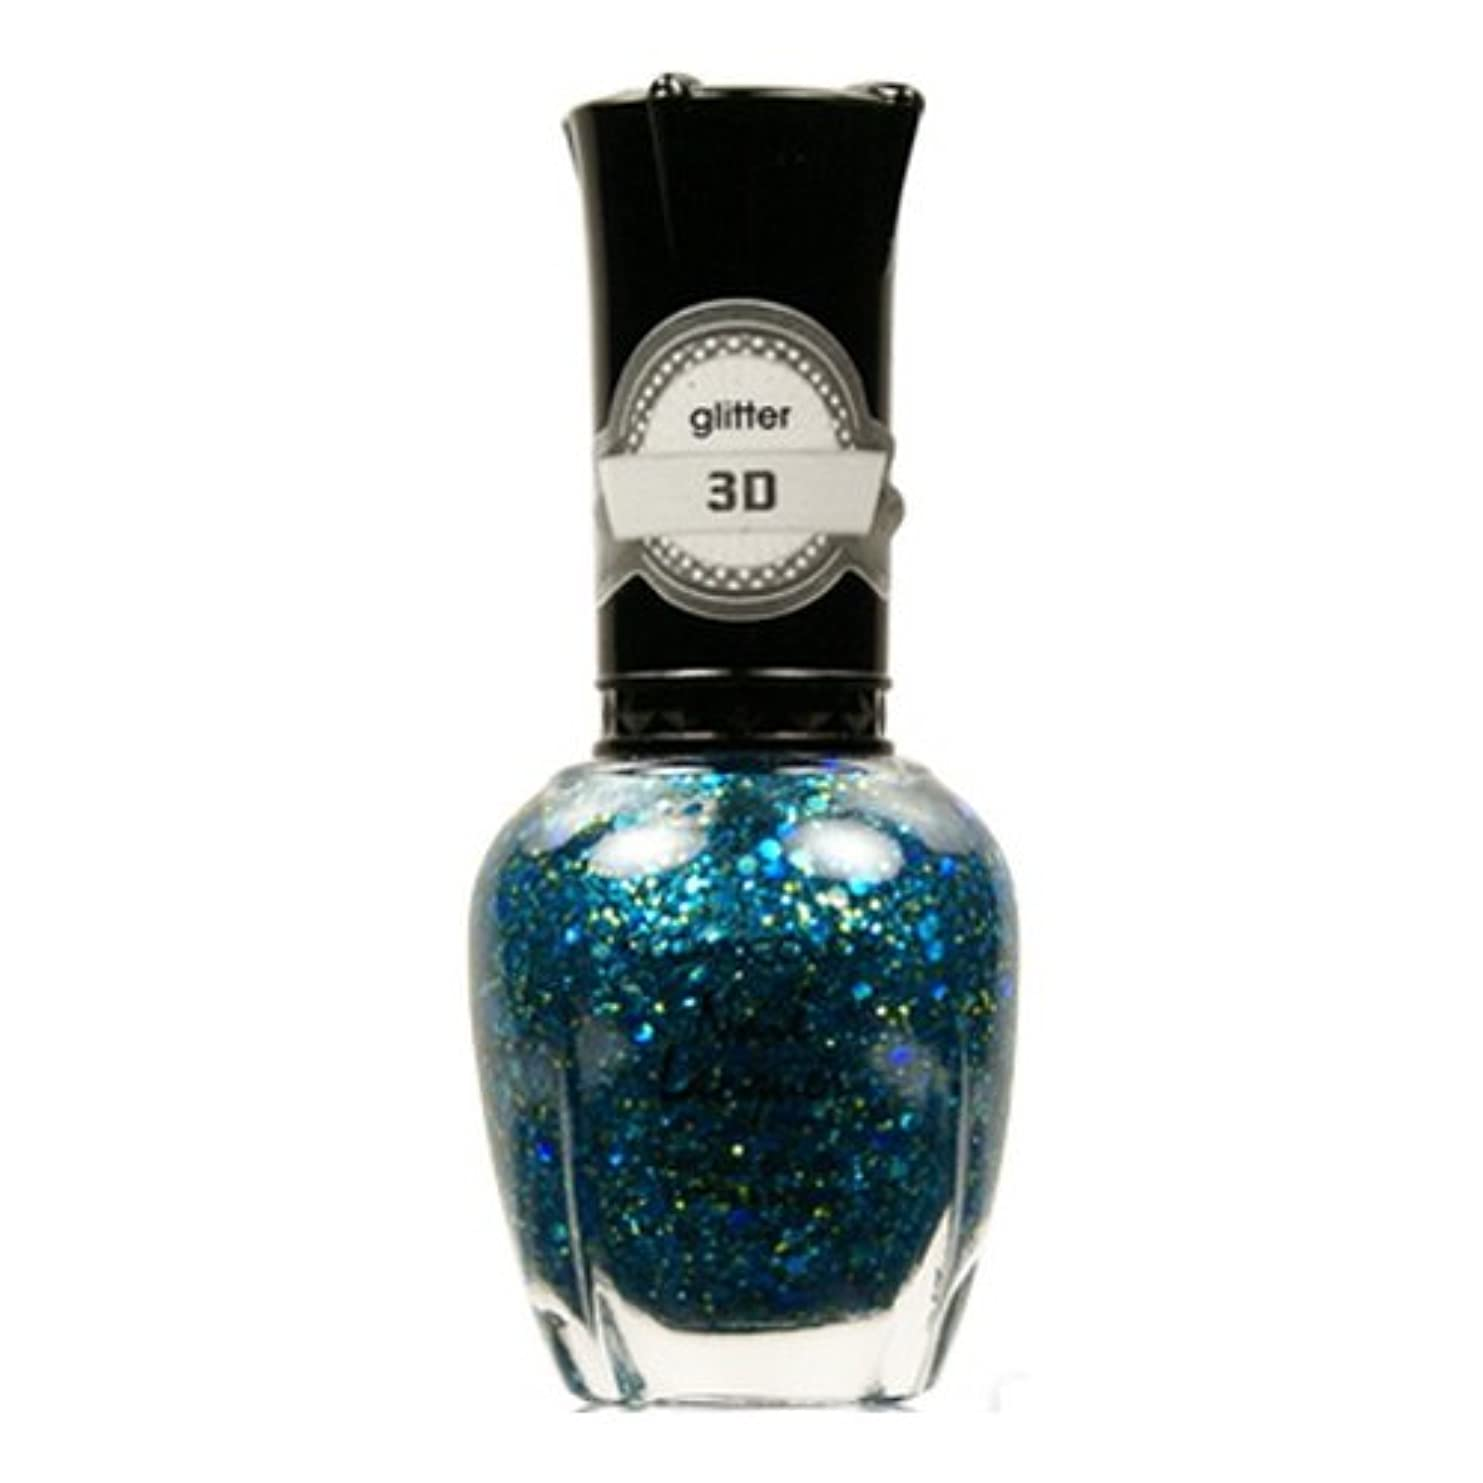 引き算冷蔵庫同意するKLEANCOLOR 3D Nail Lacquer - Luv U TEAL I Find Someone Better (並行輸入品)